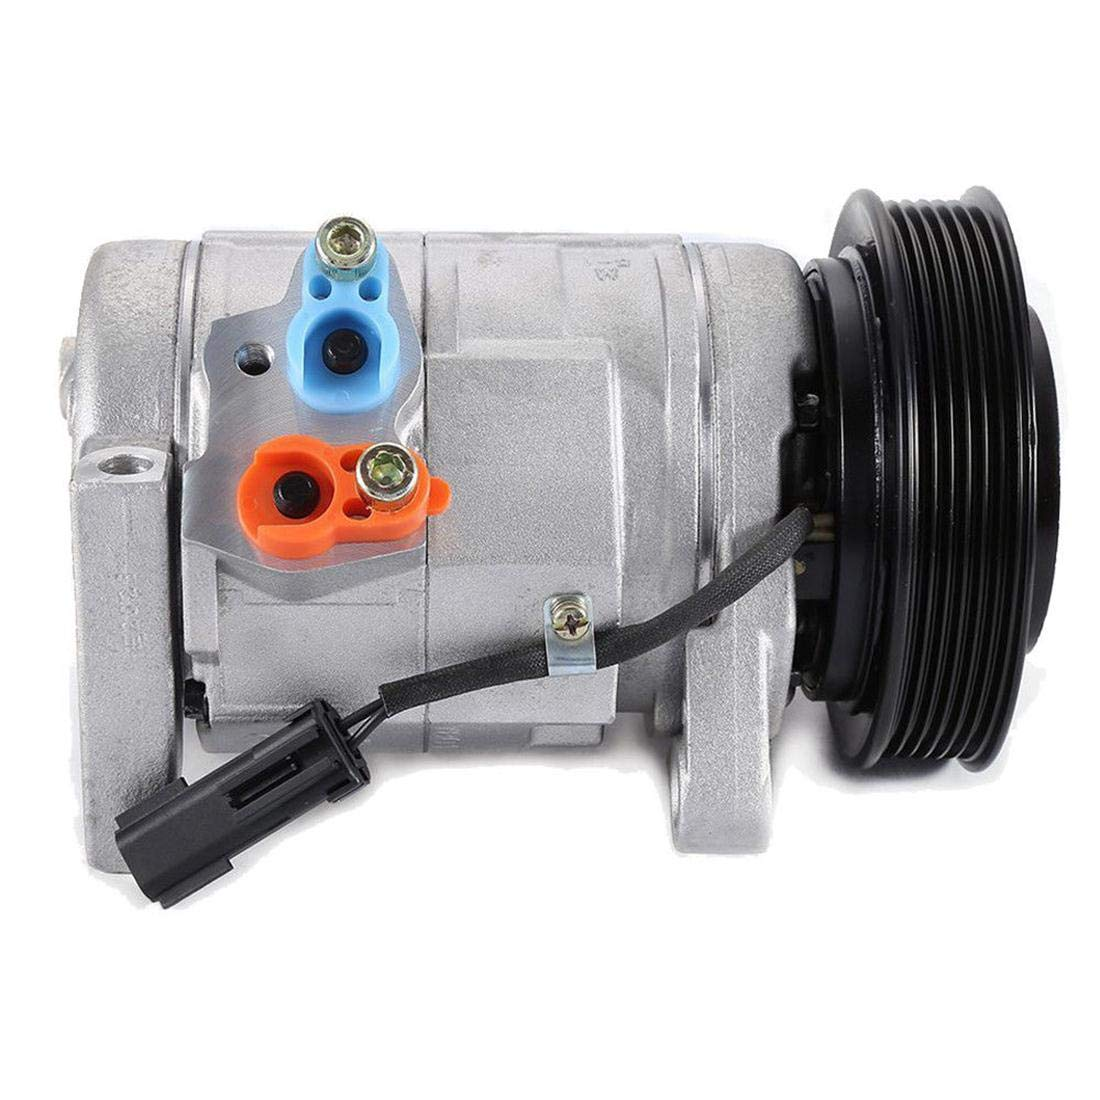 Roadstar 5005441AD Air Conditioner A/C Compressor and AC Clutch Fit For 2001-2007 Dodge Grand Caravan/Chrysler Town & Country 3.3L 3.8L V6 29001C